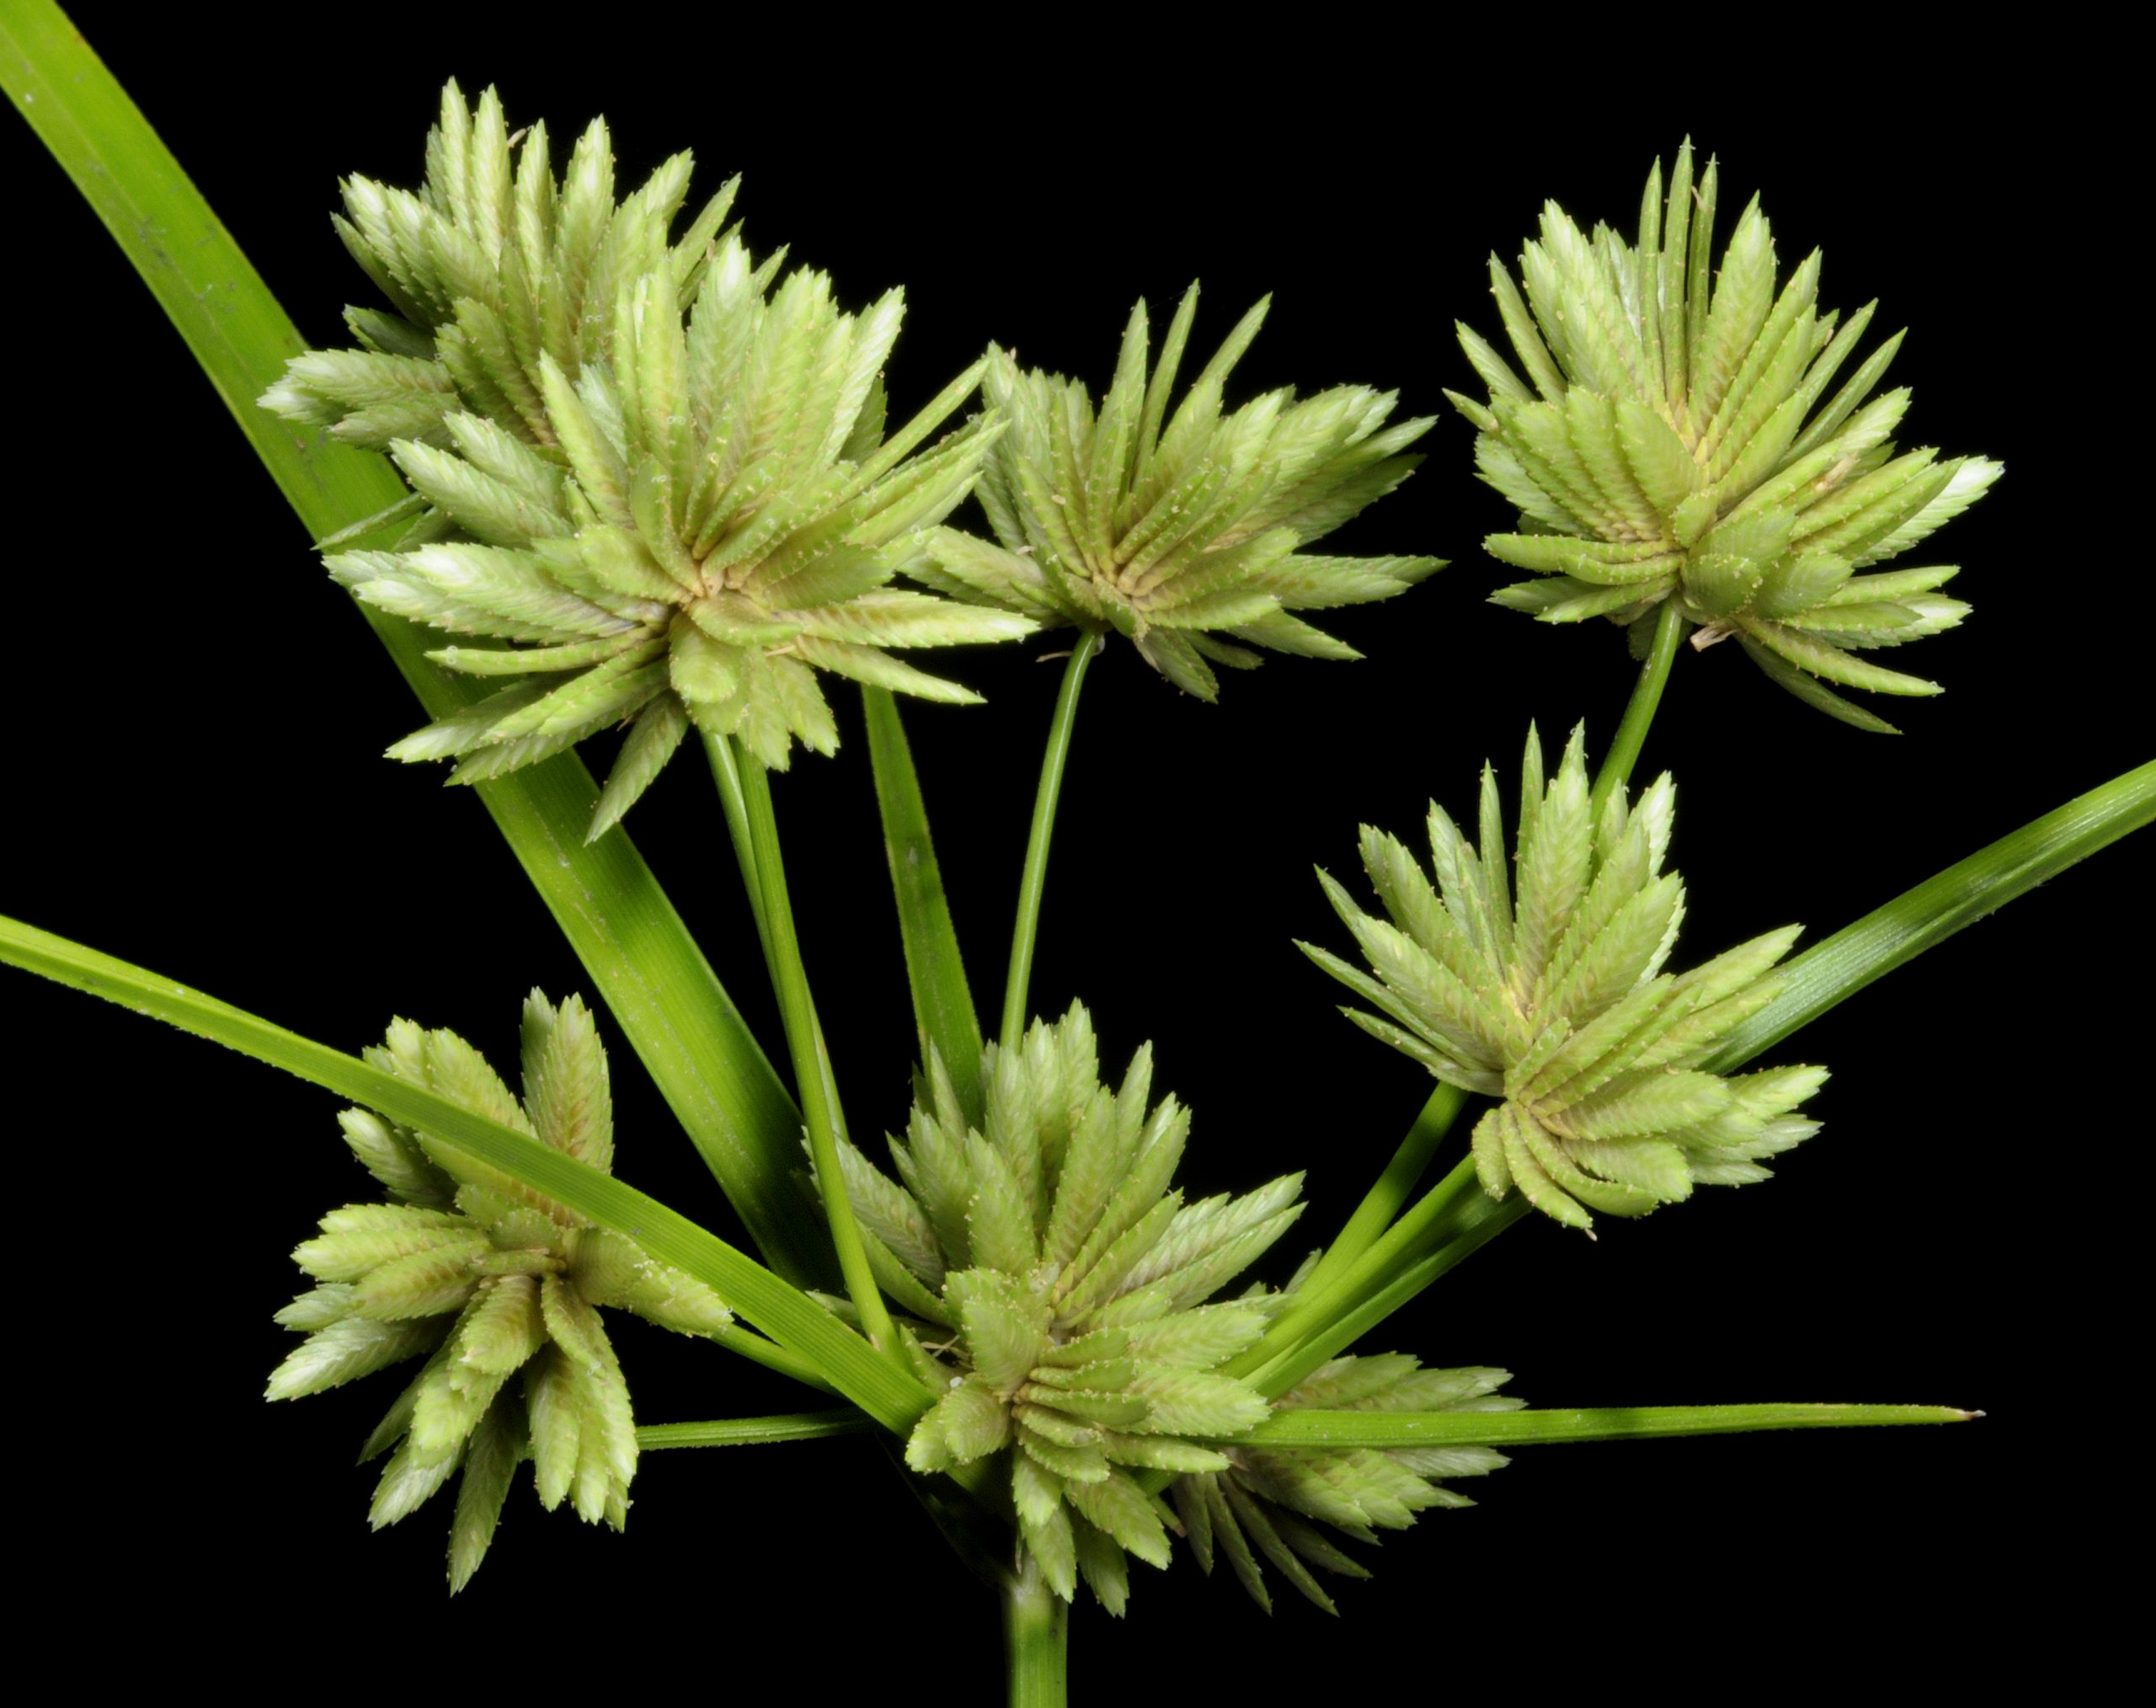 <i>Cyperus eragrostis</i> – Umbrella Sedge